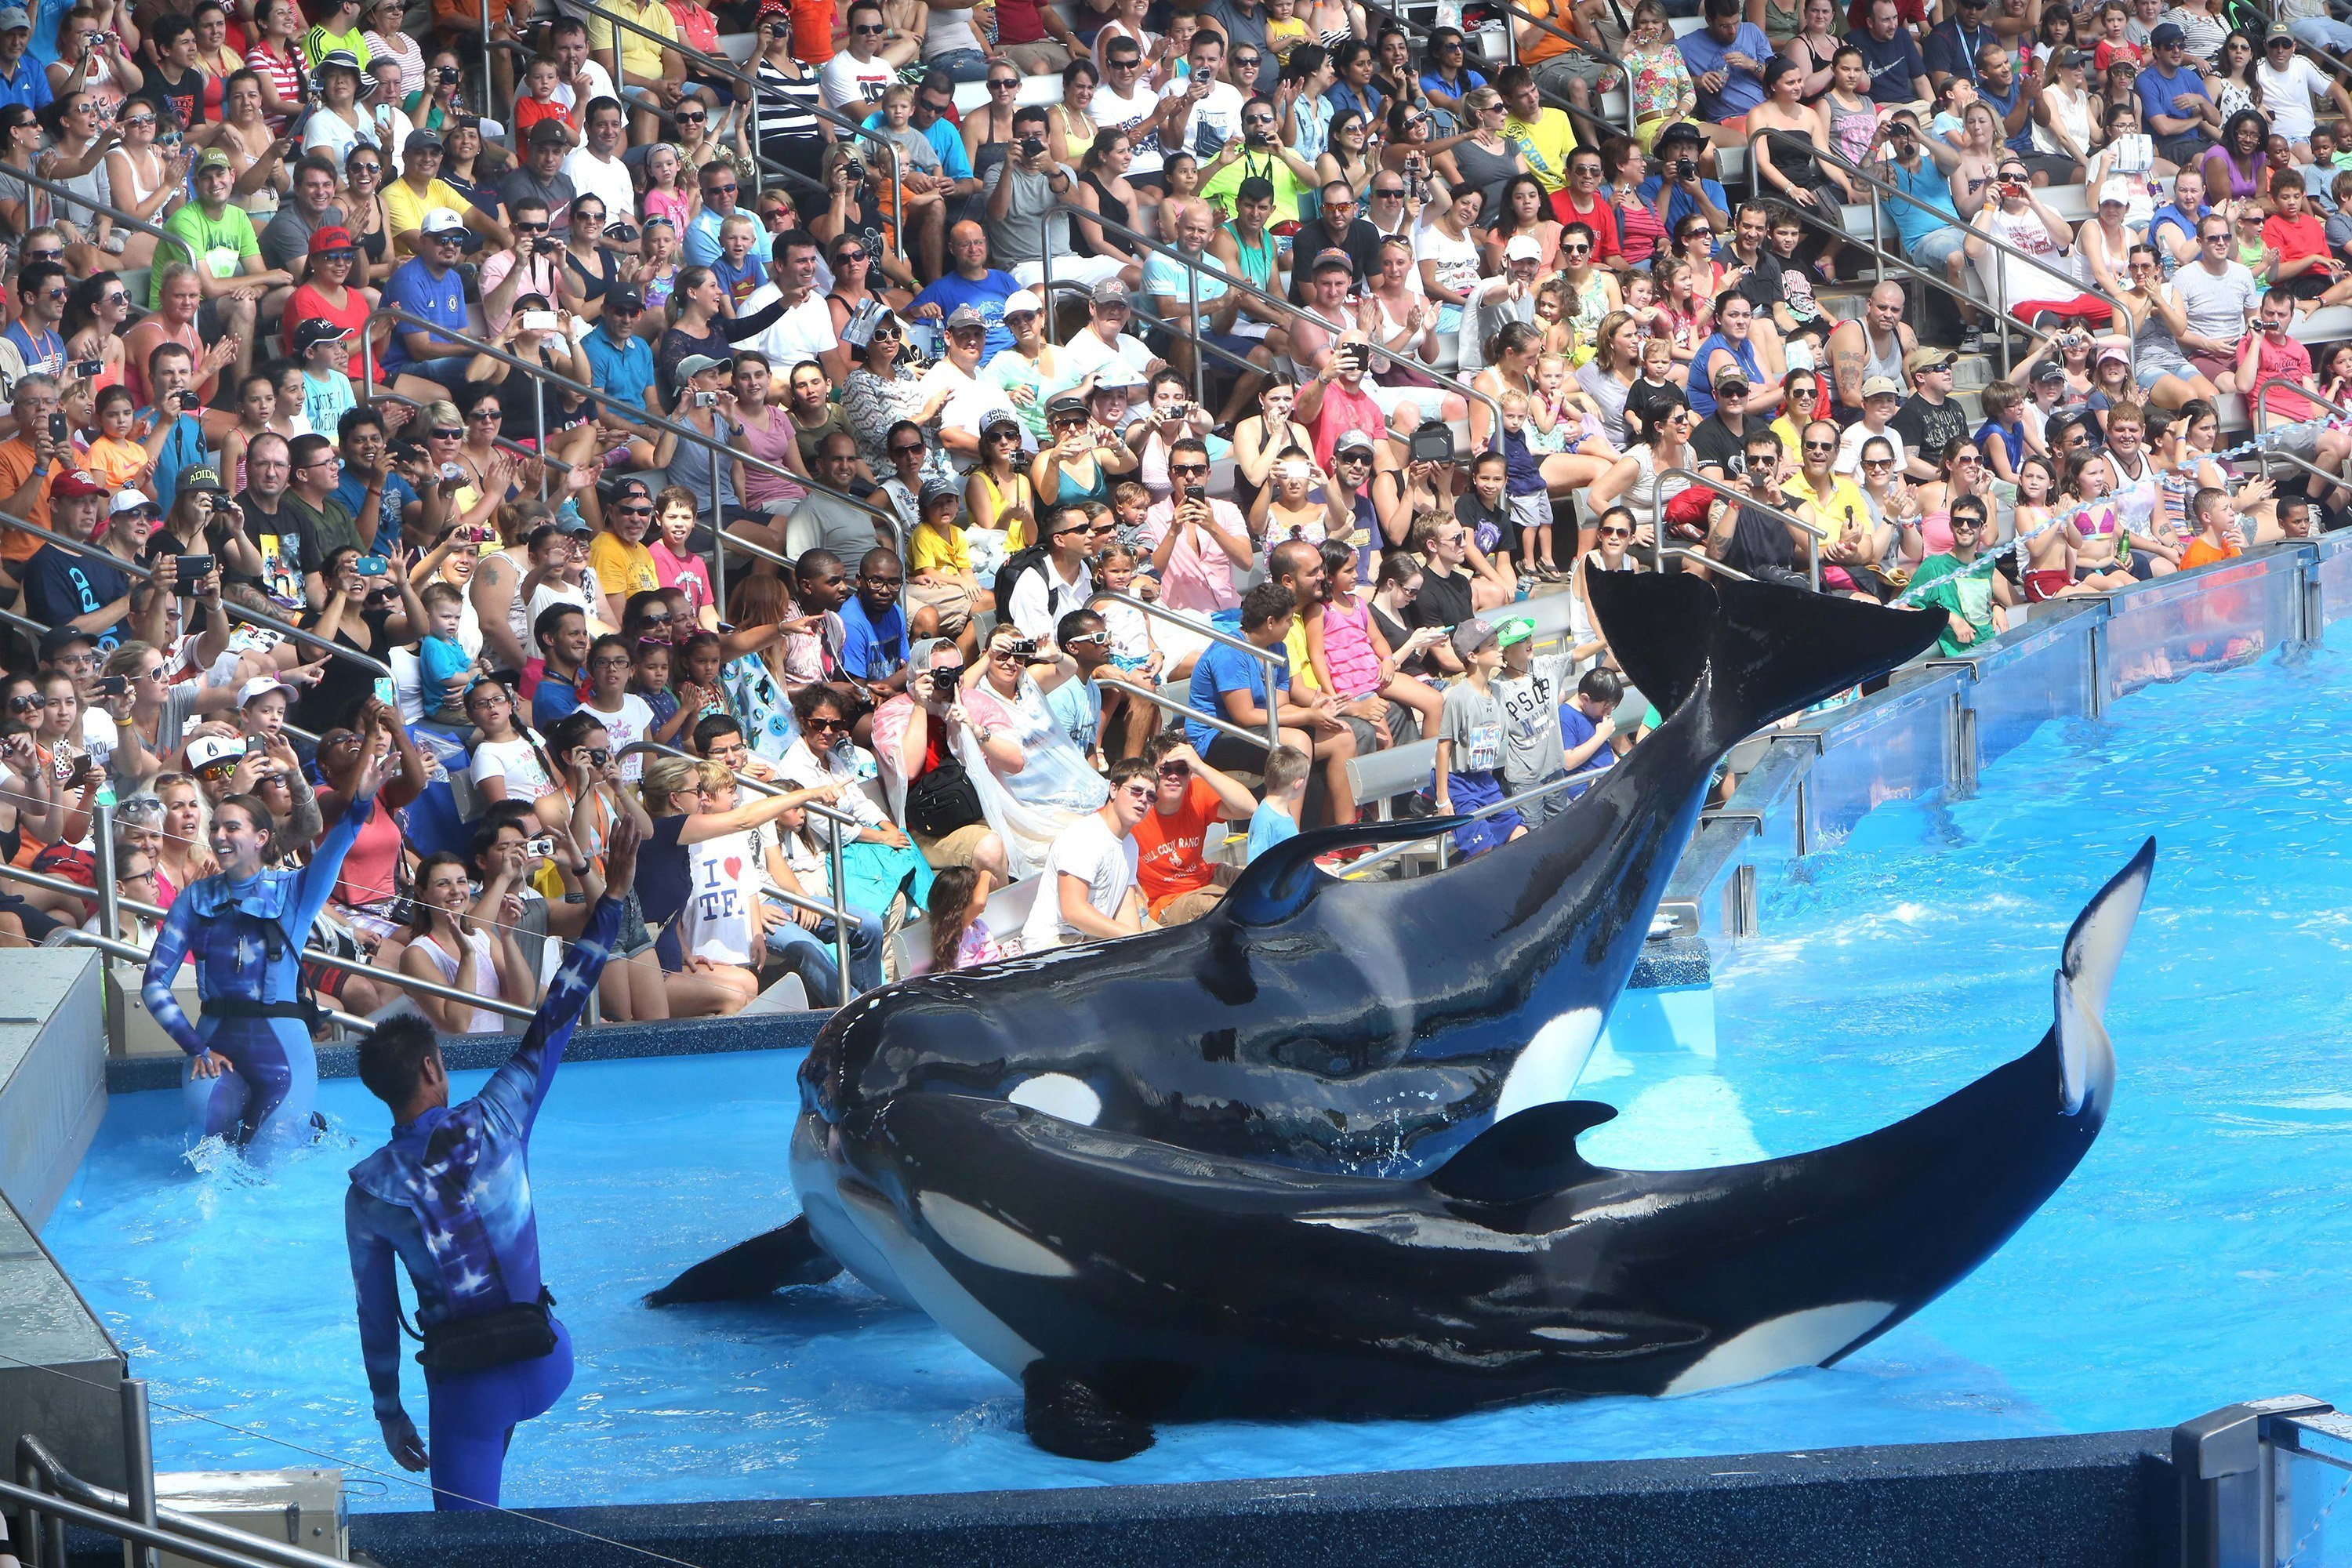 SeaWorld is heavily emphasizing conservation amid controversy over its killer whales.